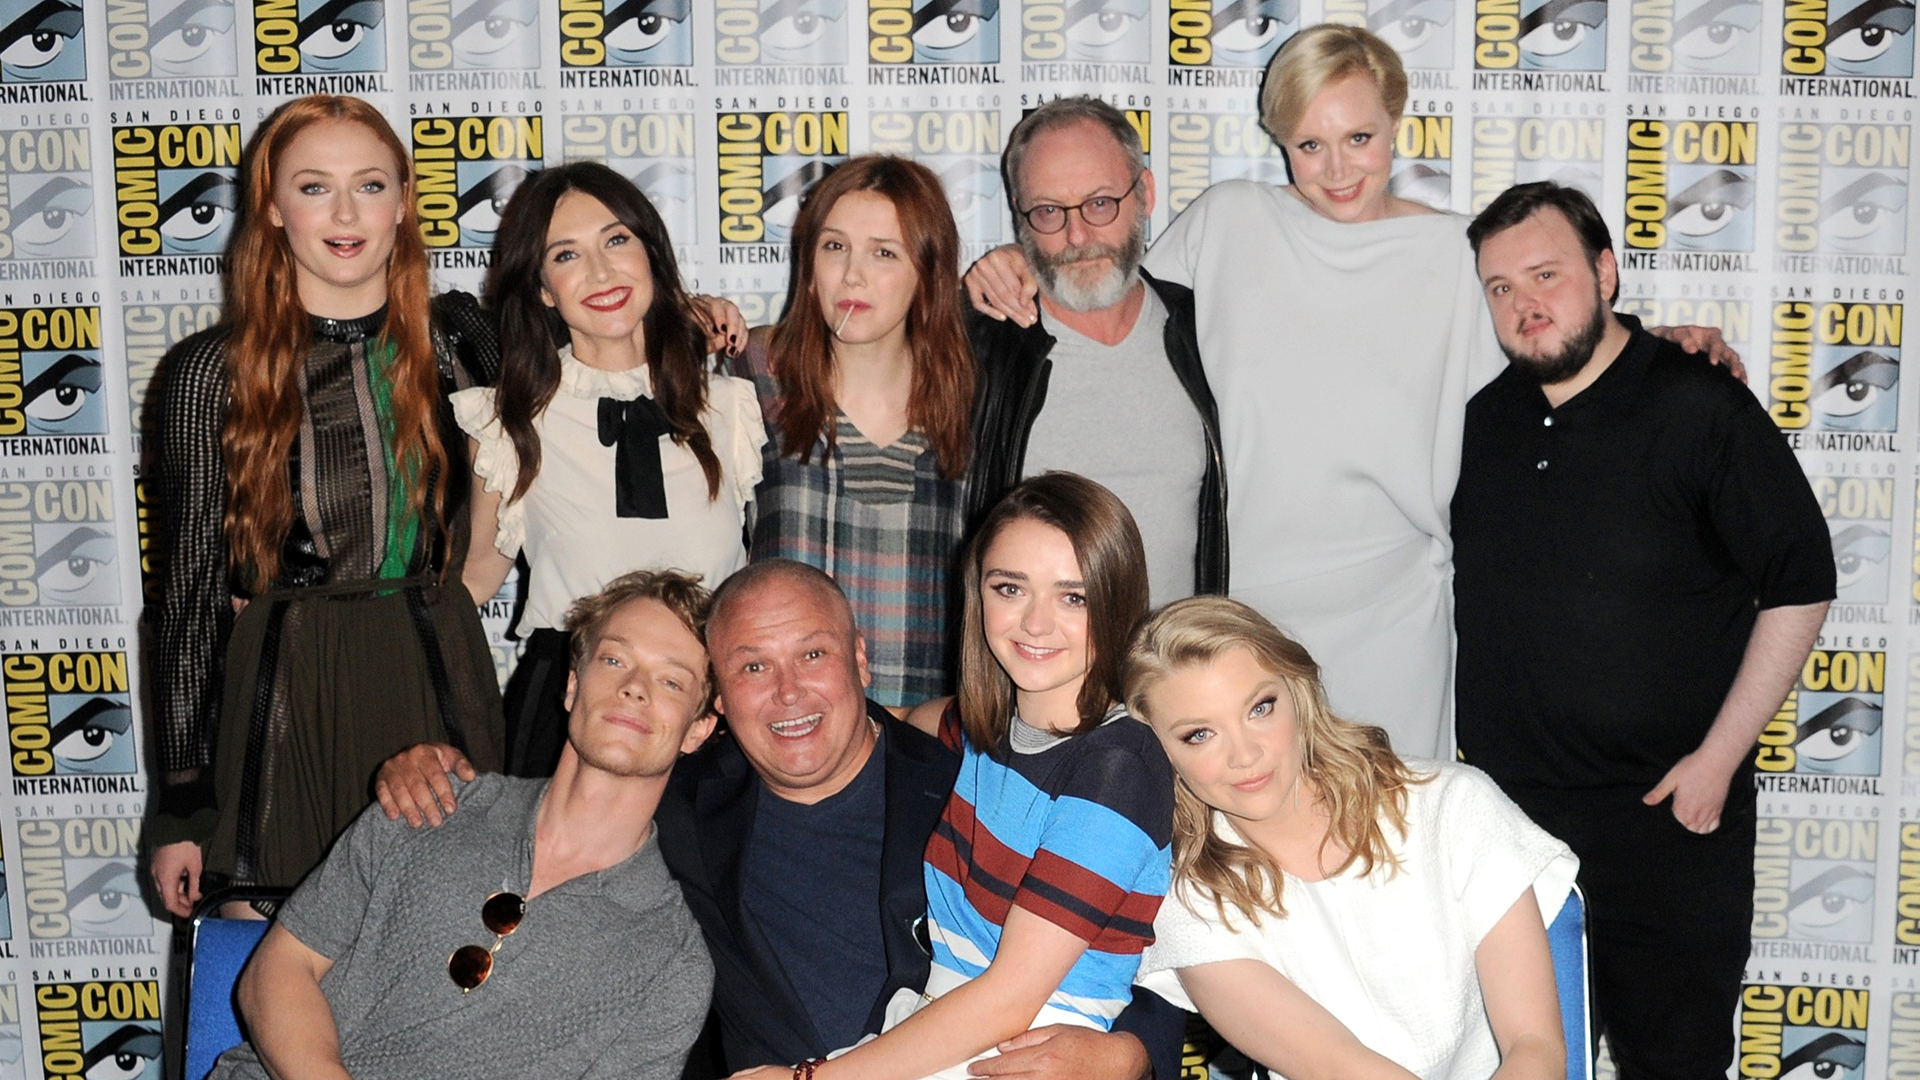 See The Game Of Thrones Cast Out Costume At Comic Con